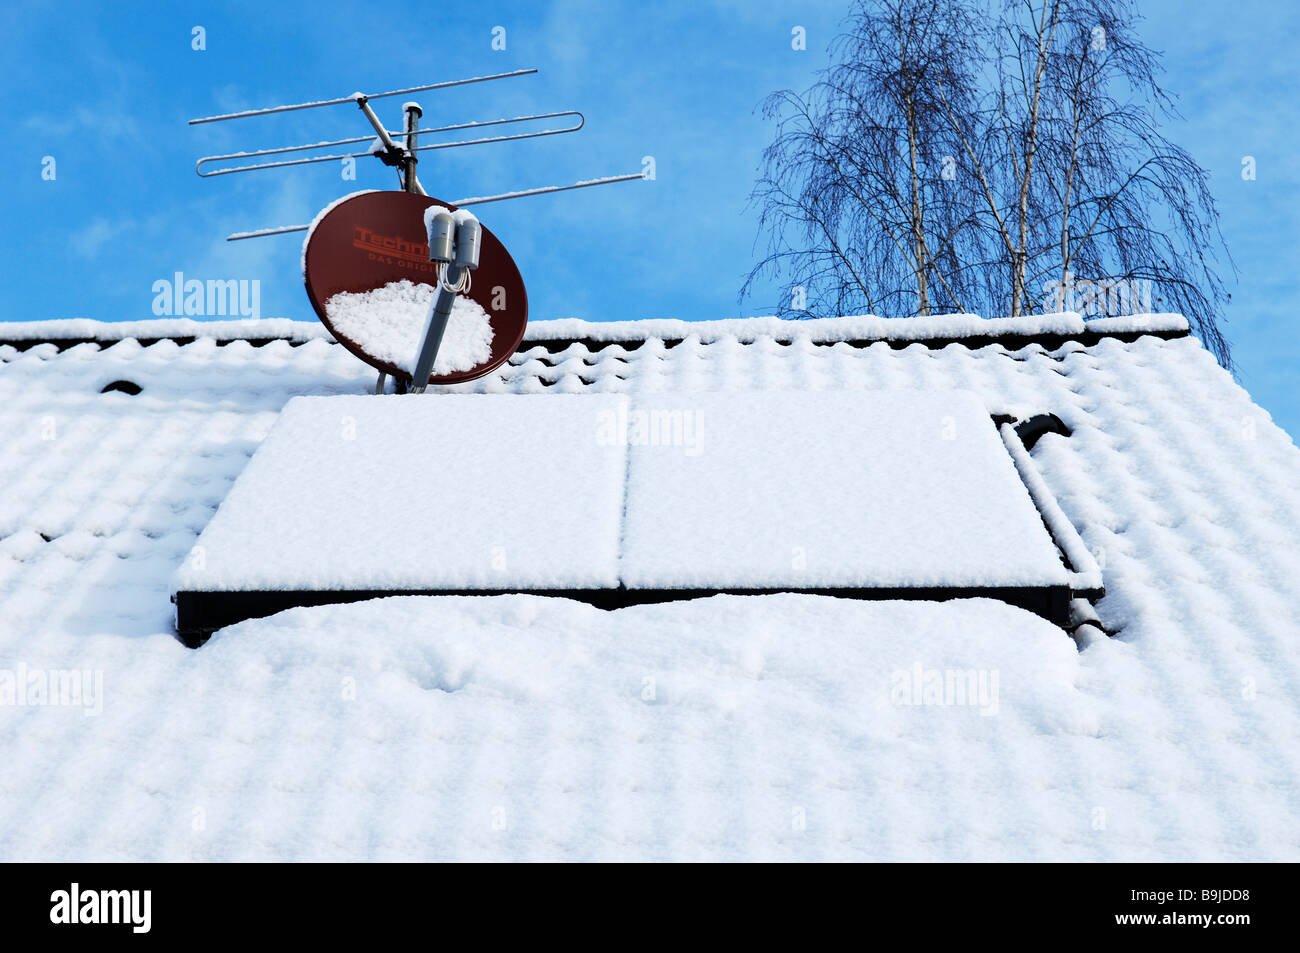 Snow-covered solar panels on a one-family-house, Eckental Valley, Middle Franconia, Bavaria, Germany, Europe - Stock Image